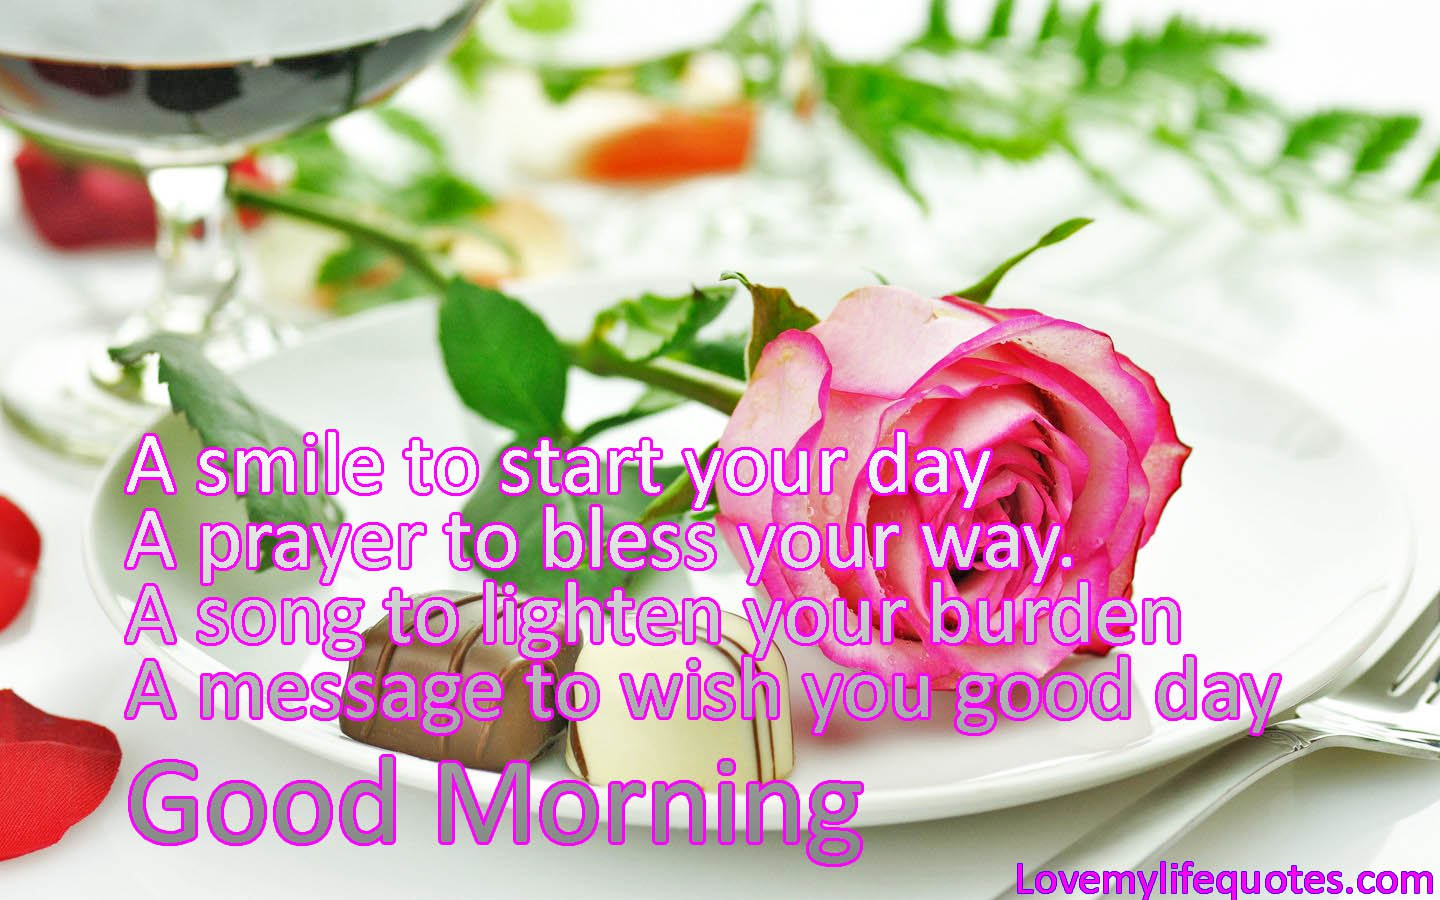 Good Morning Love Message For My Girlfriend : Good morning wishes with blessing pictures images page